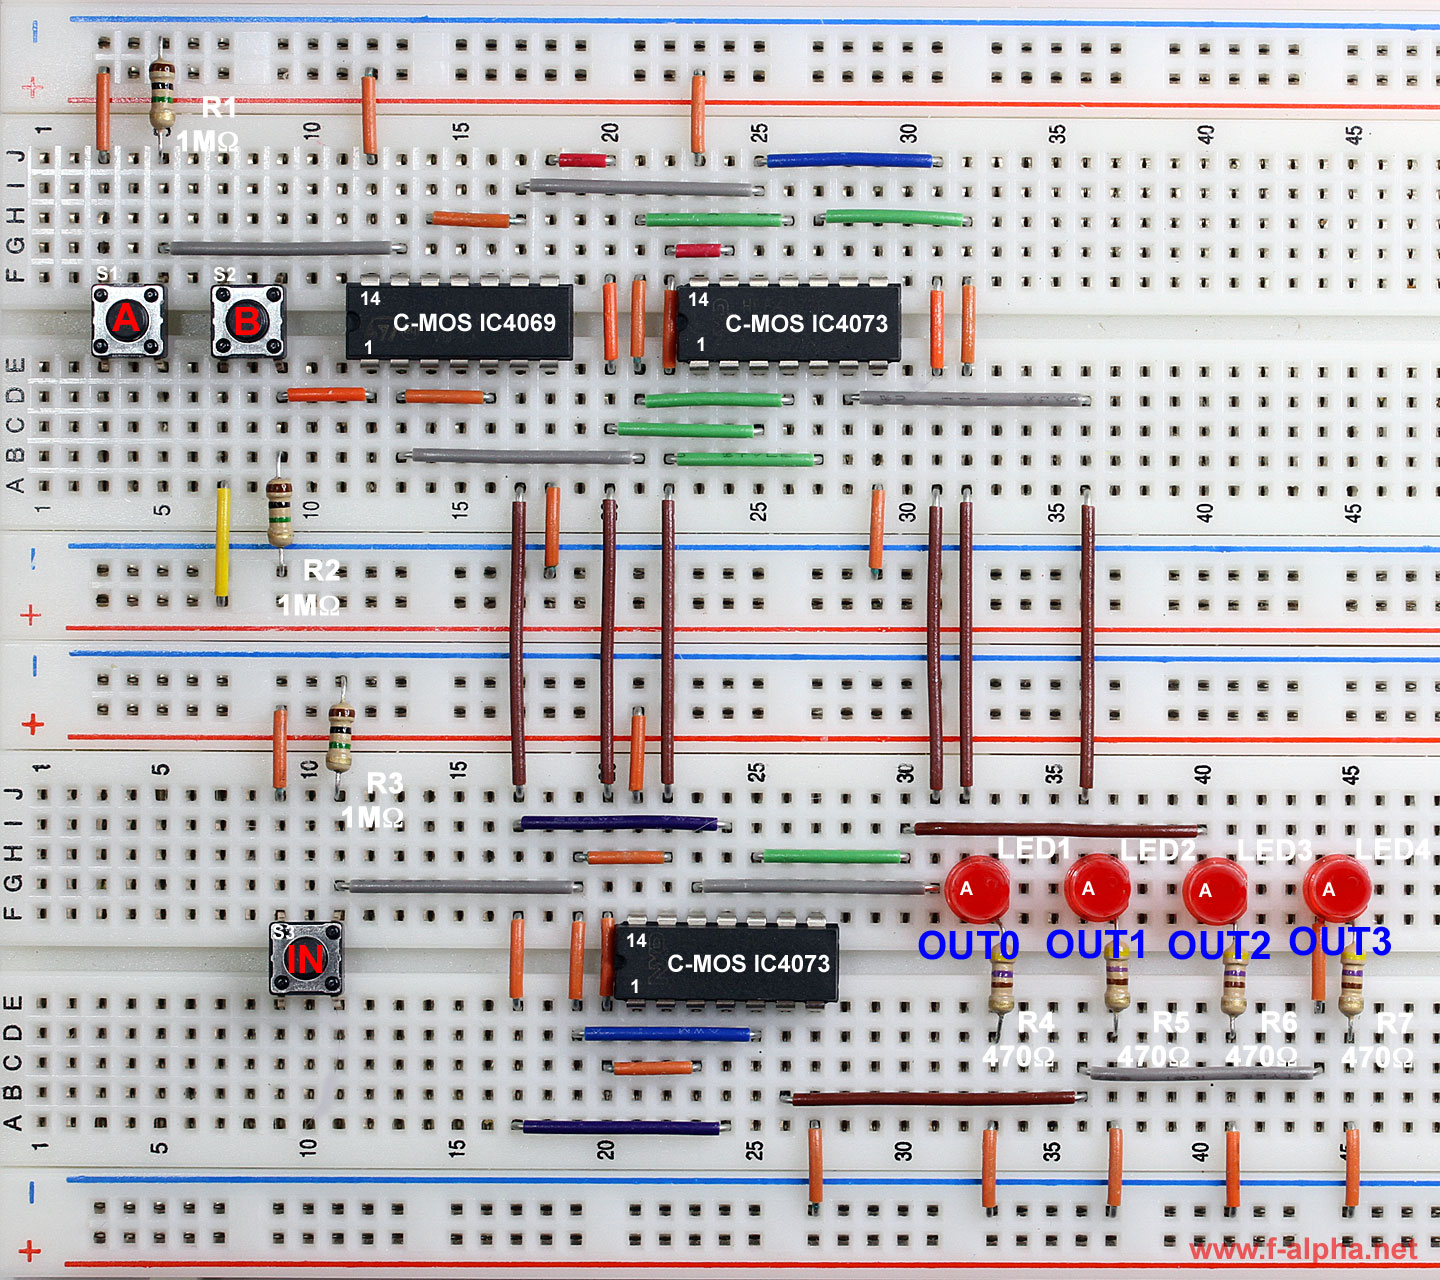 logic diagram of 8 to 1 line multiplexer nissan almera wiring f alpha experiment 4 demultiplexer